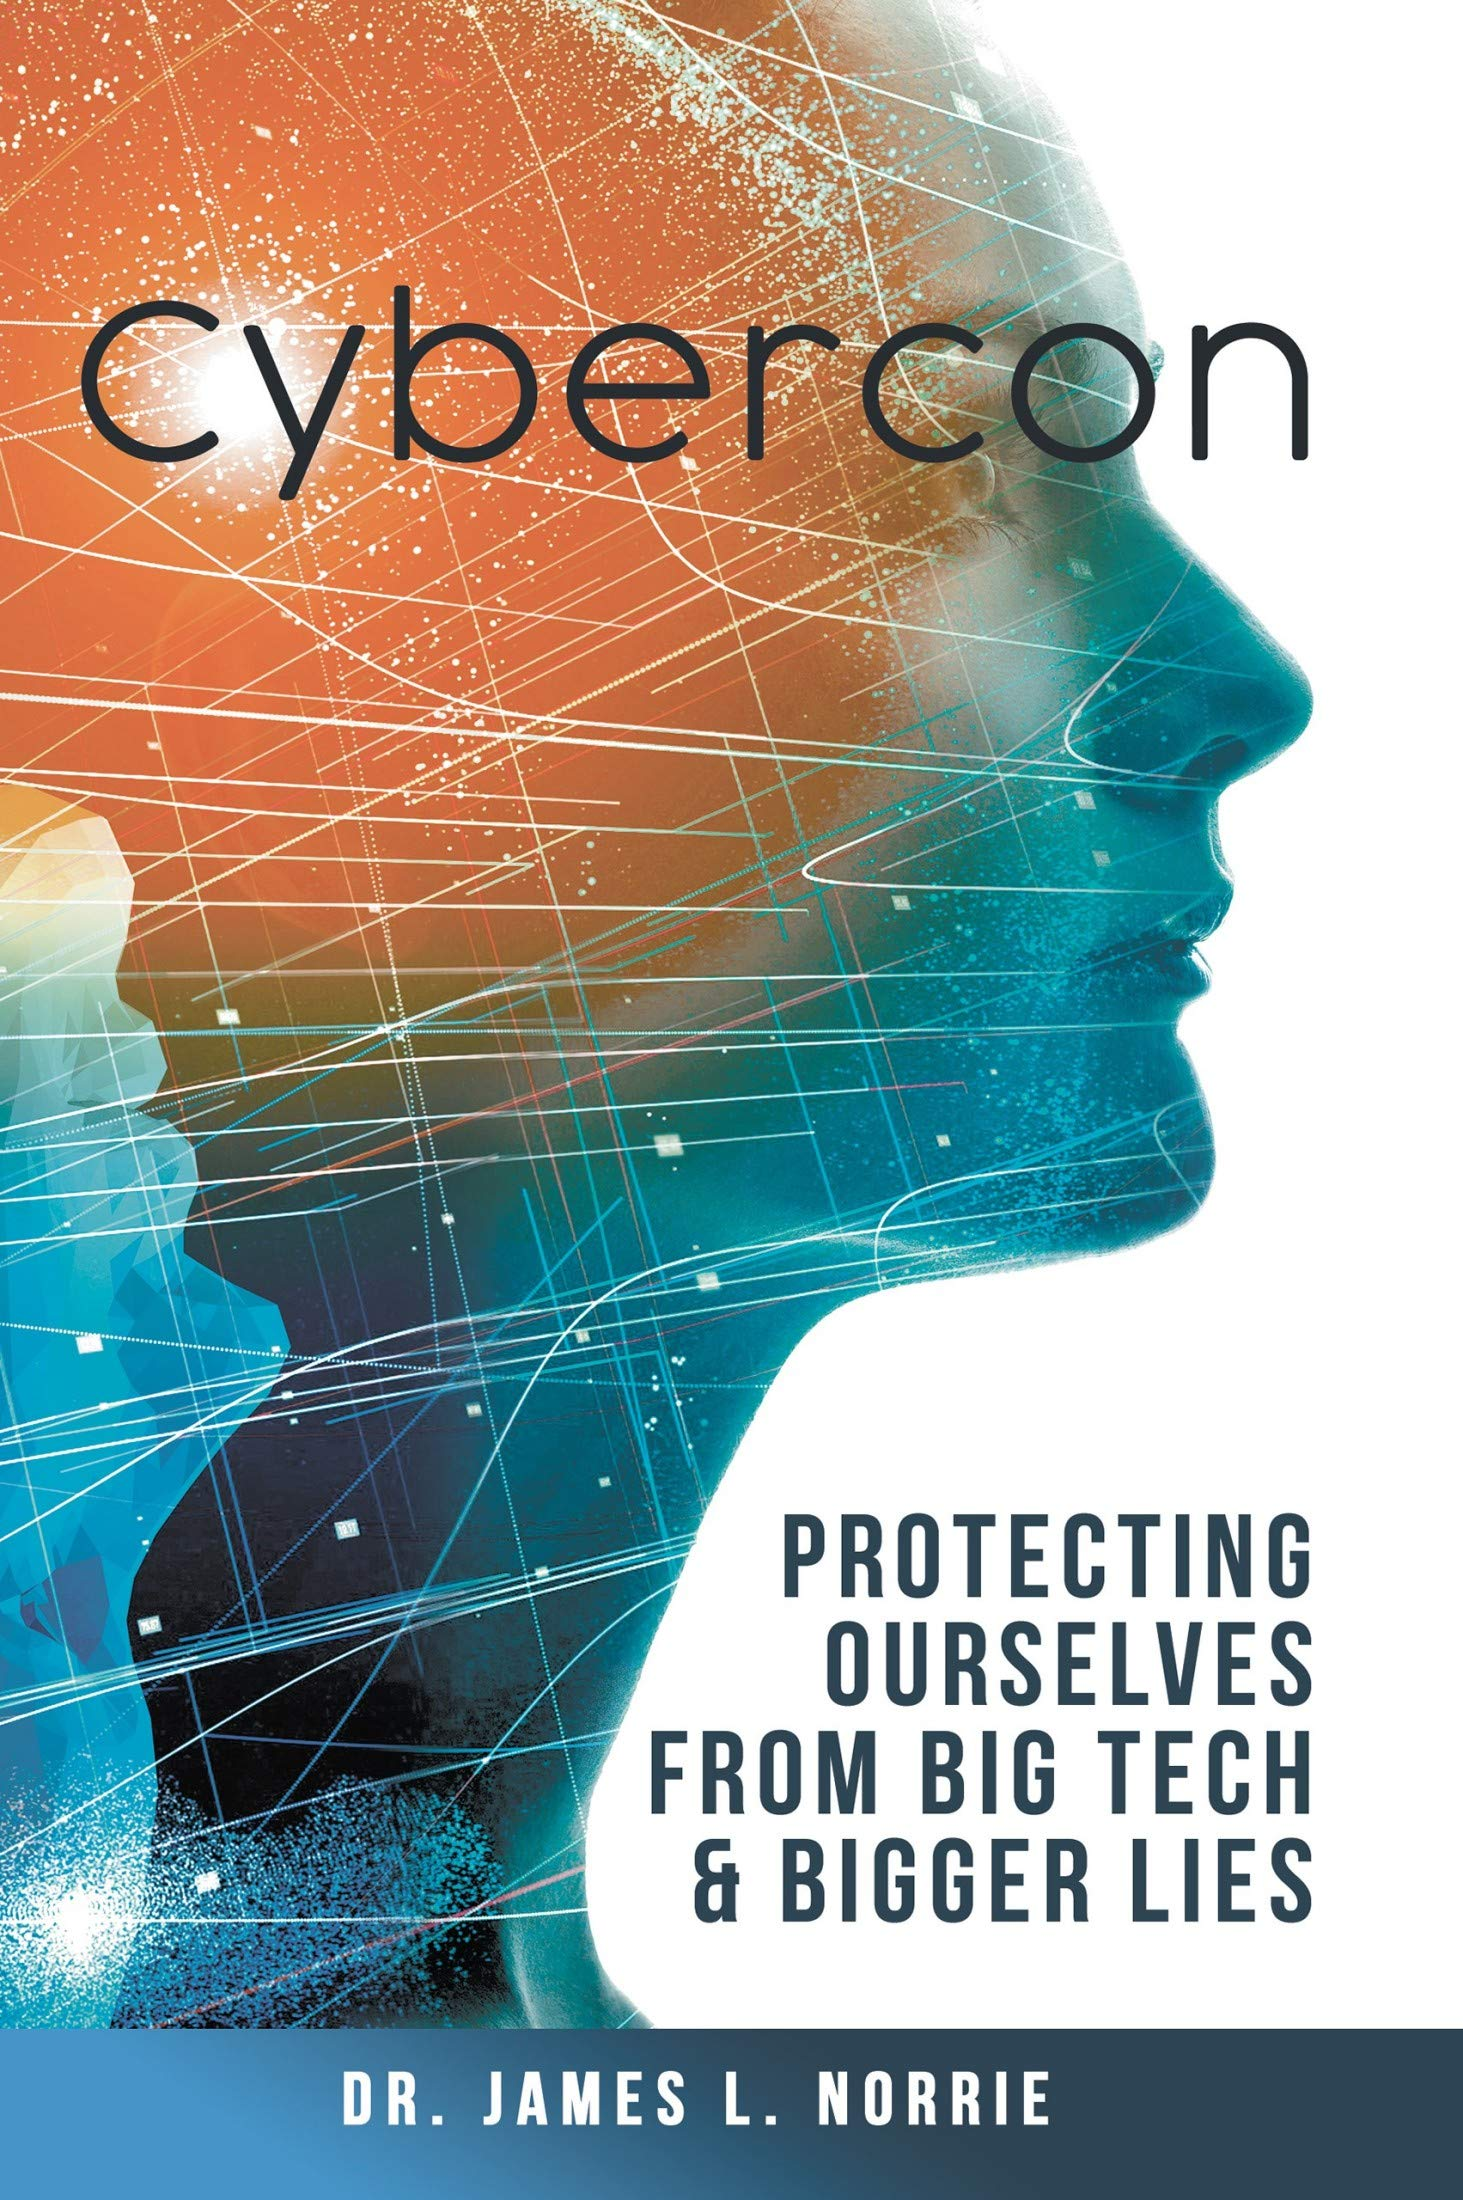 Image OfCybercon: Protecting Ourselves From Big Tech & Bigger Lies (English Edition)